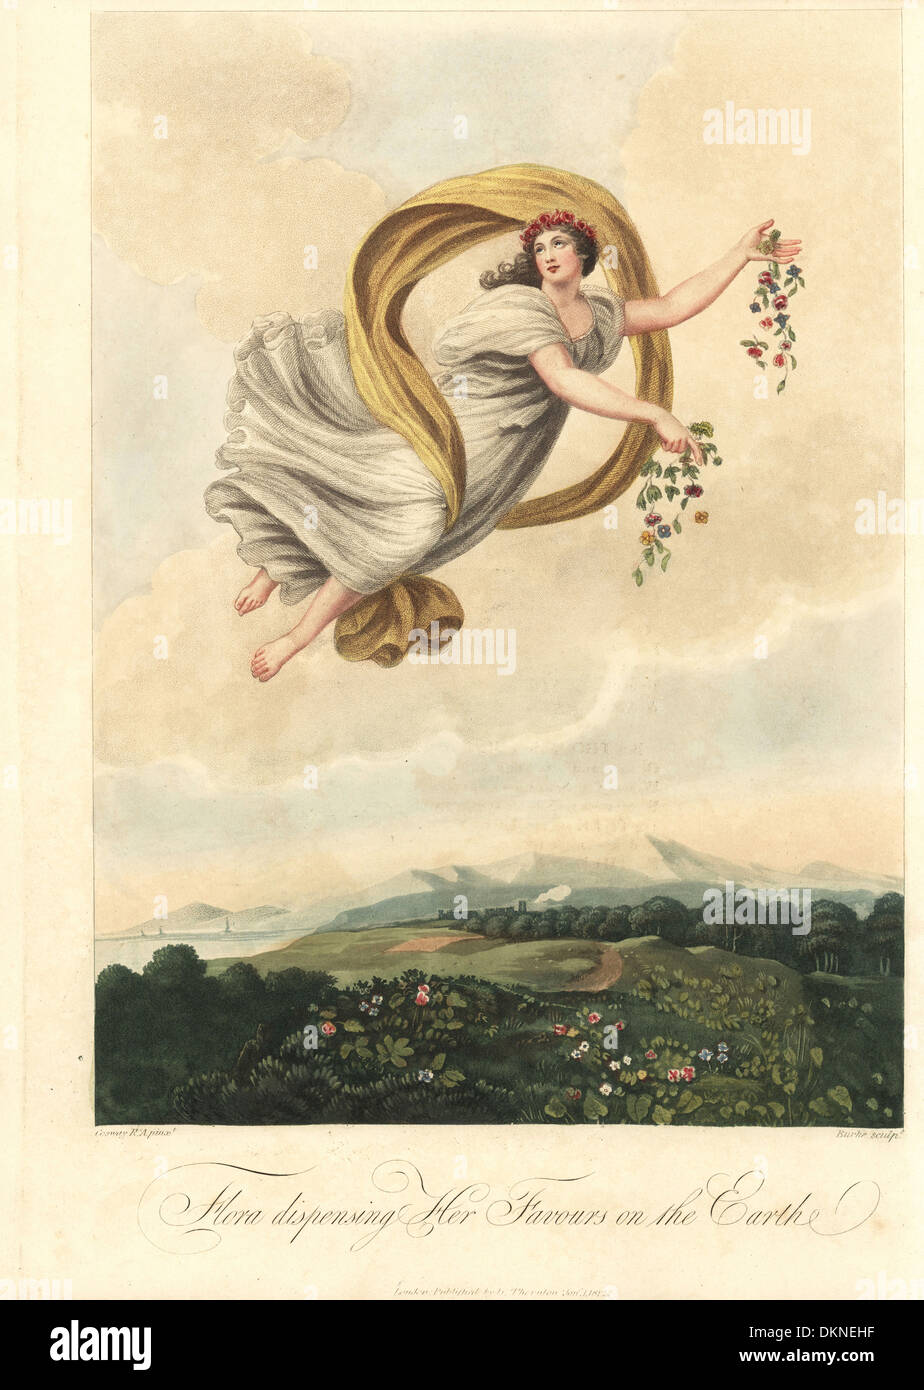 Allegorical illustration of Flora dispensing her Favours on the Earth. - Stock Image